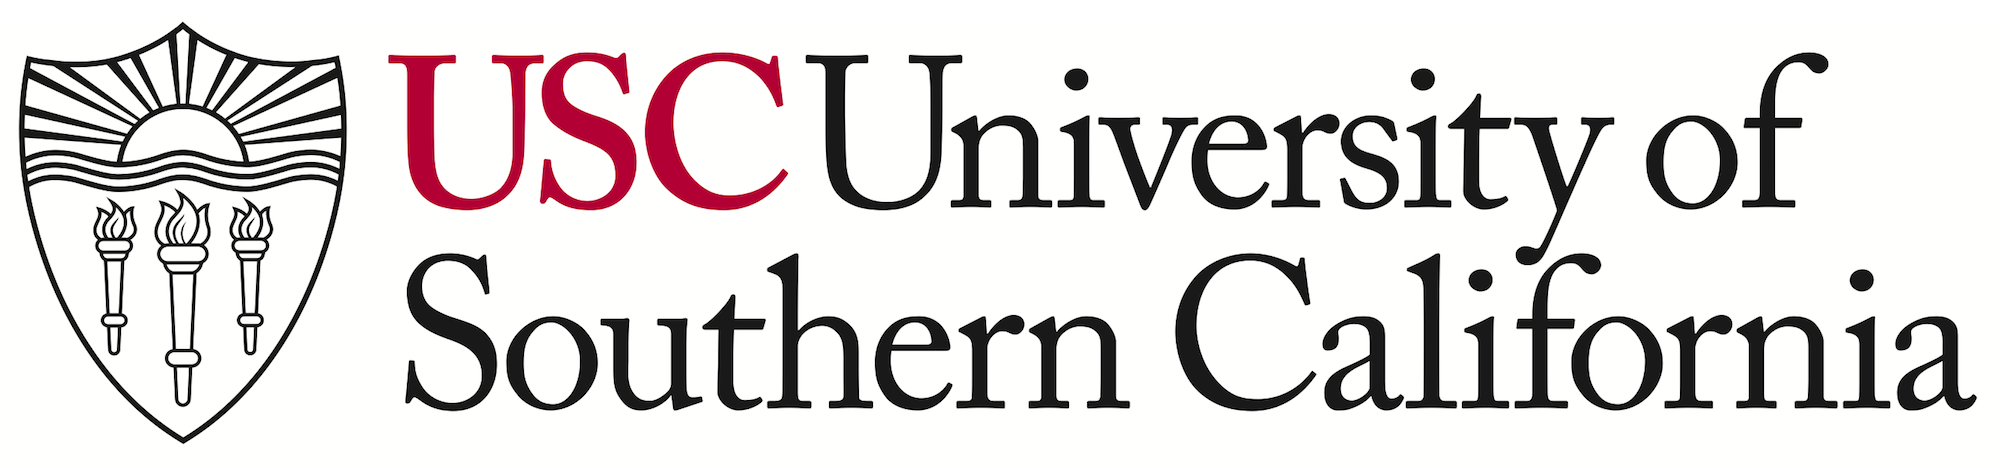 University of Southern California_Cybersecurity Masters Degree Programs